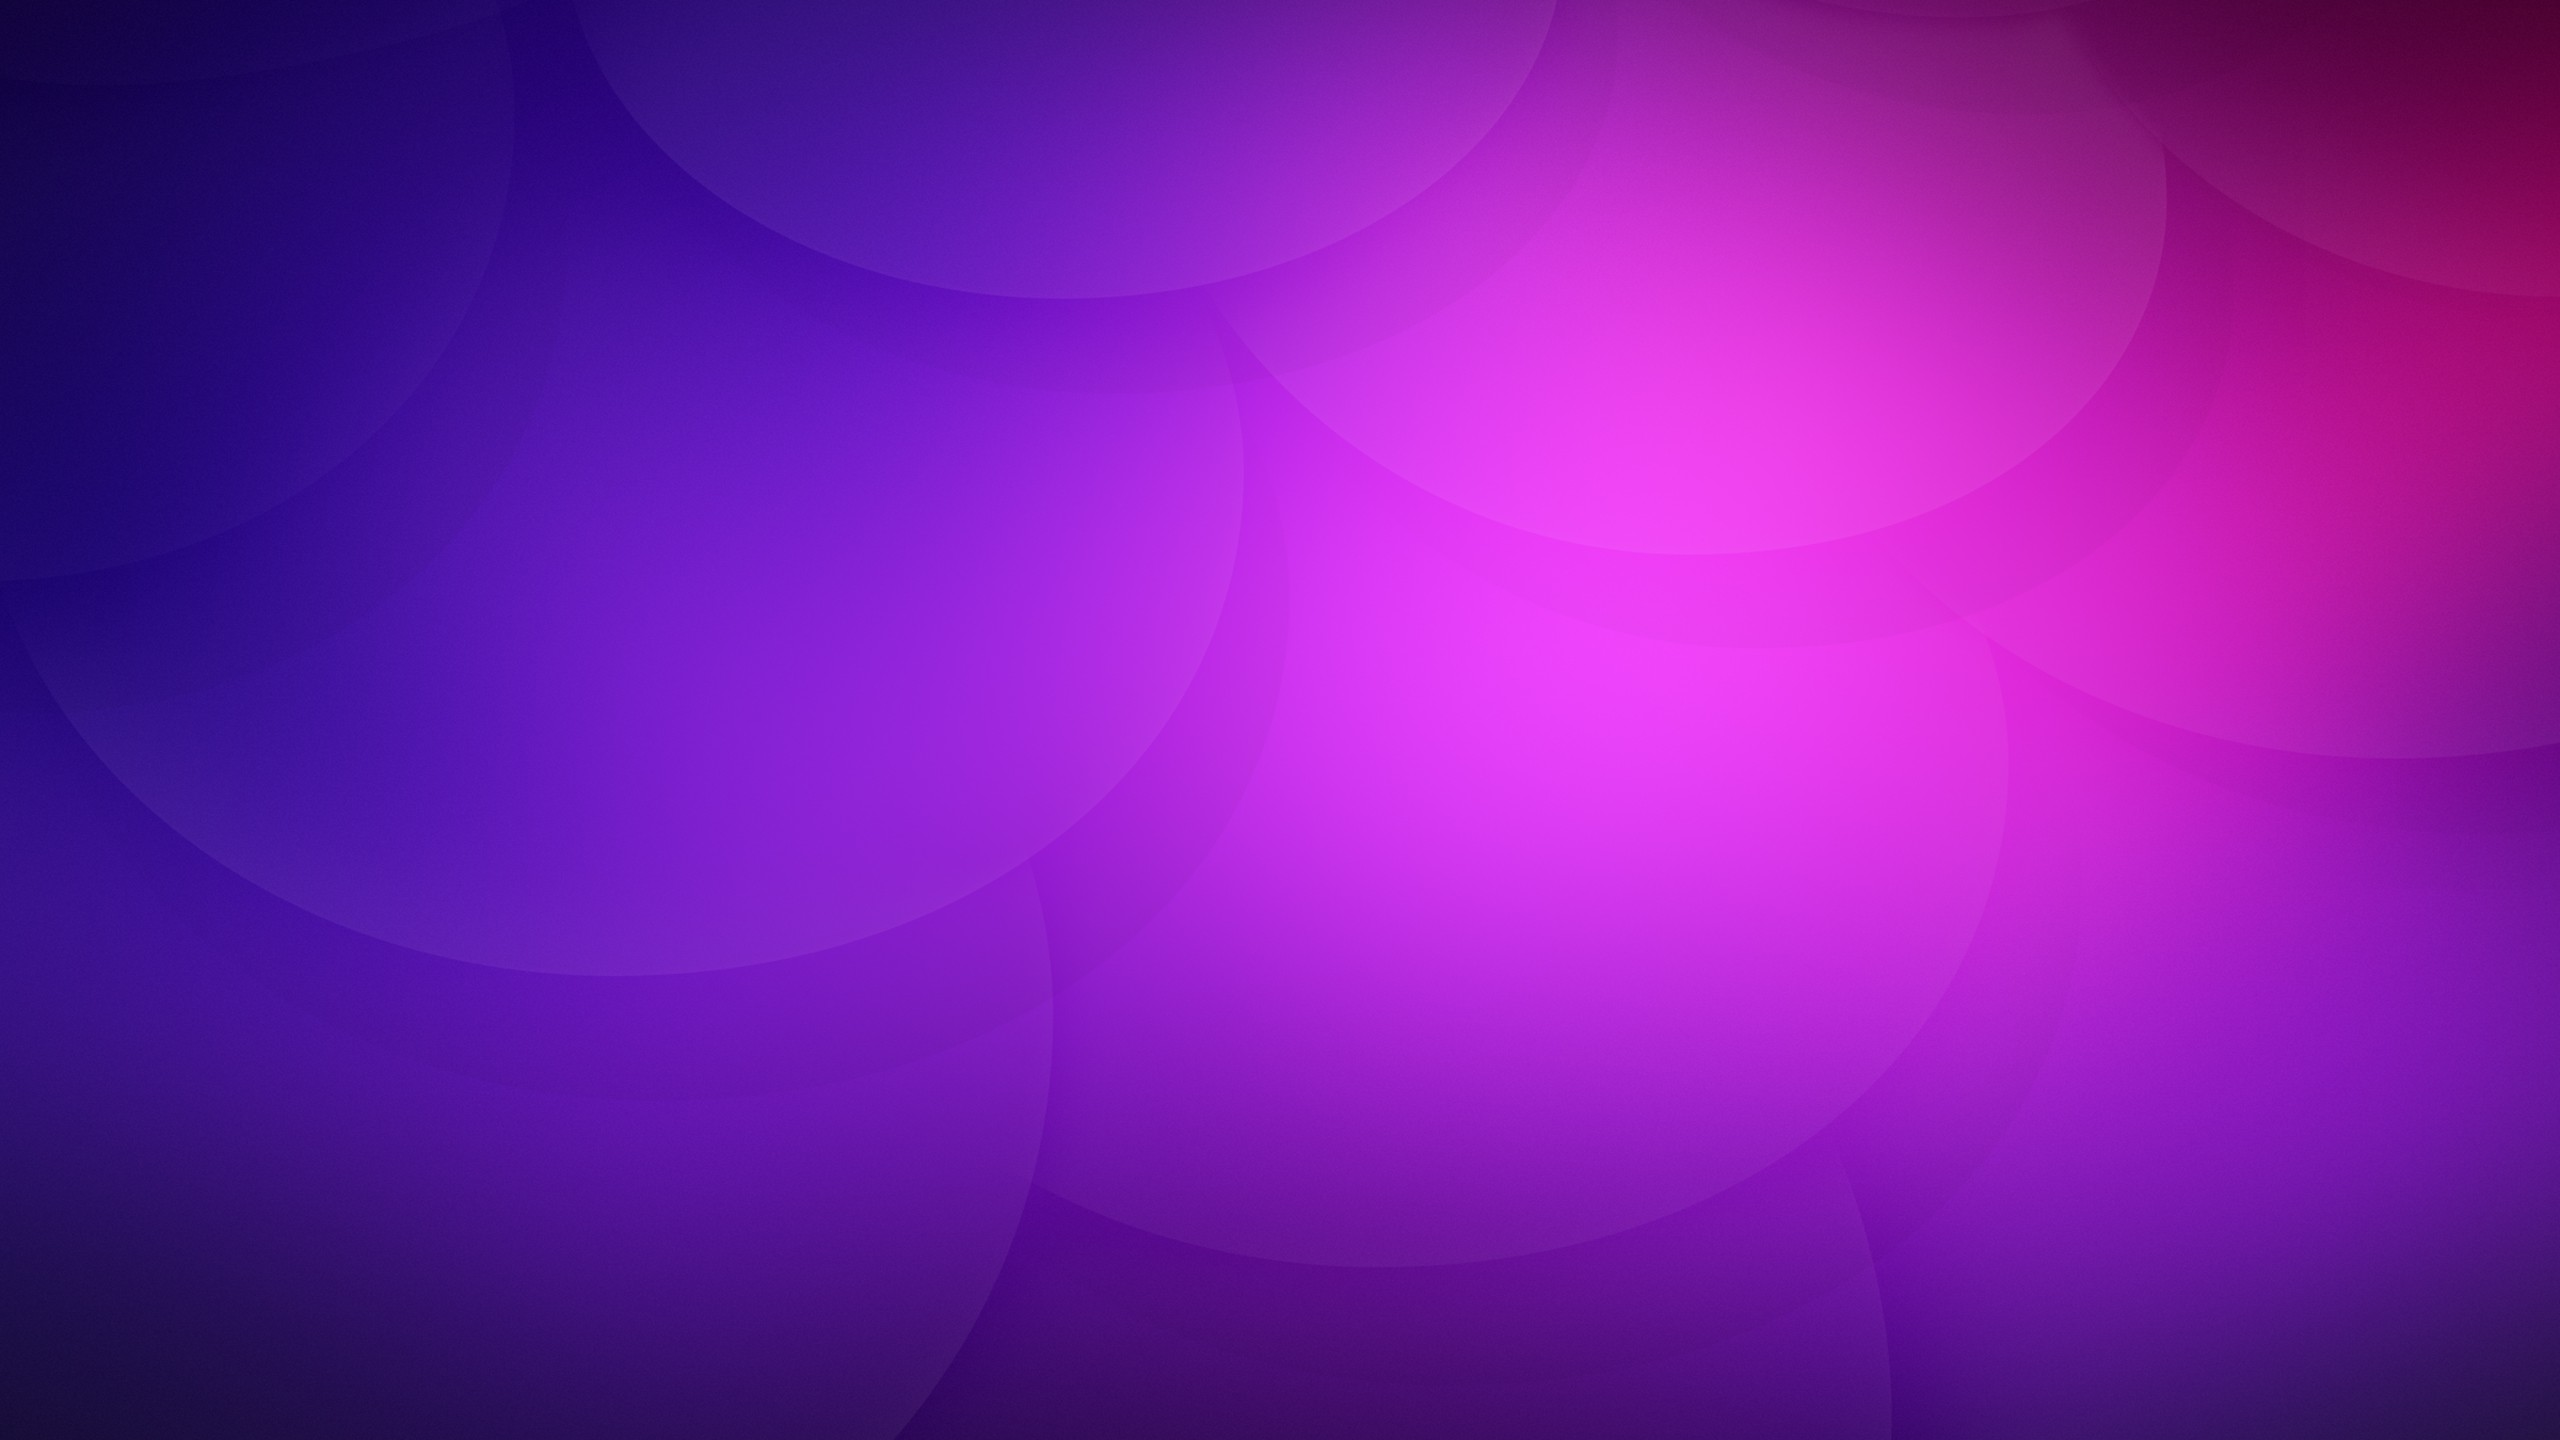 Iphone 5s Stock Wallpaper Blue And Pink Stripes Wallpapers Hd Wallpapers Id 24105